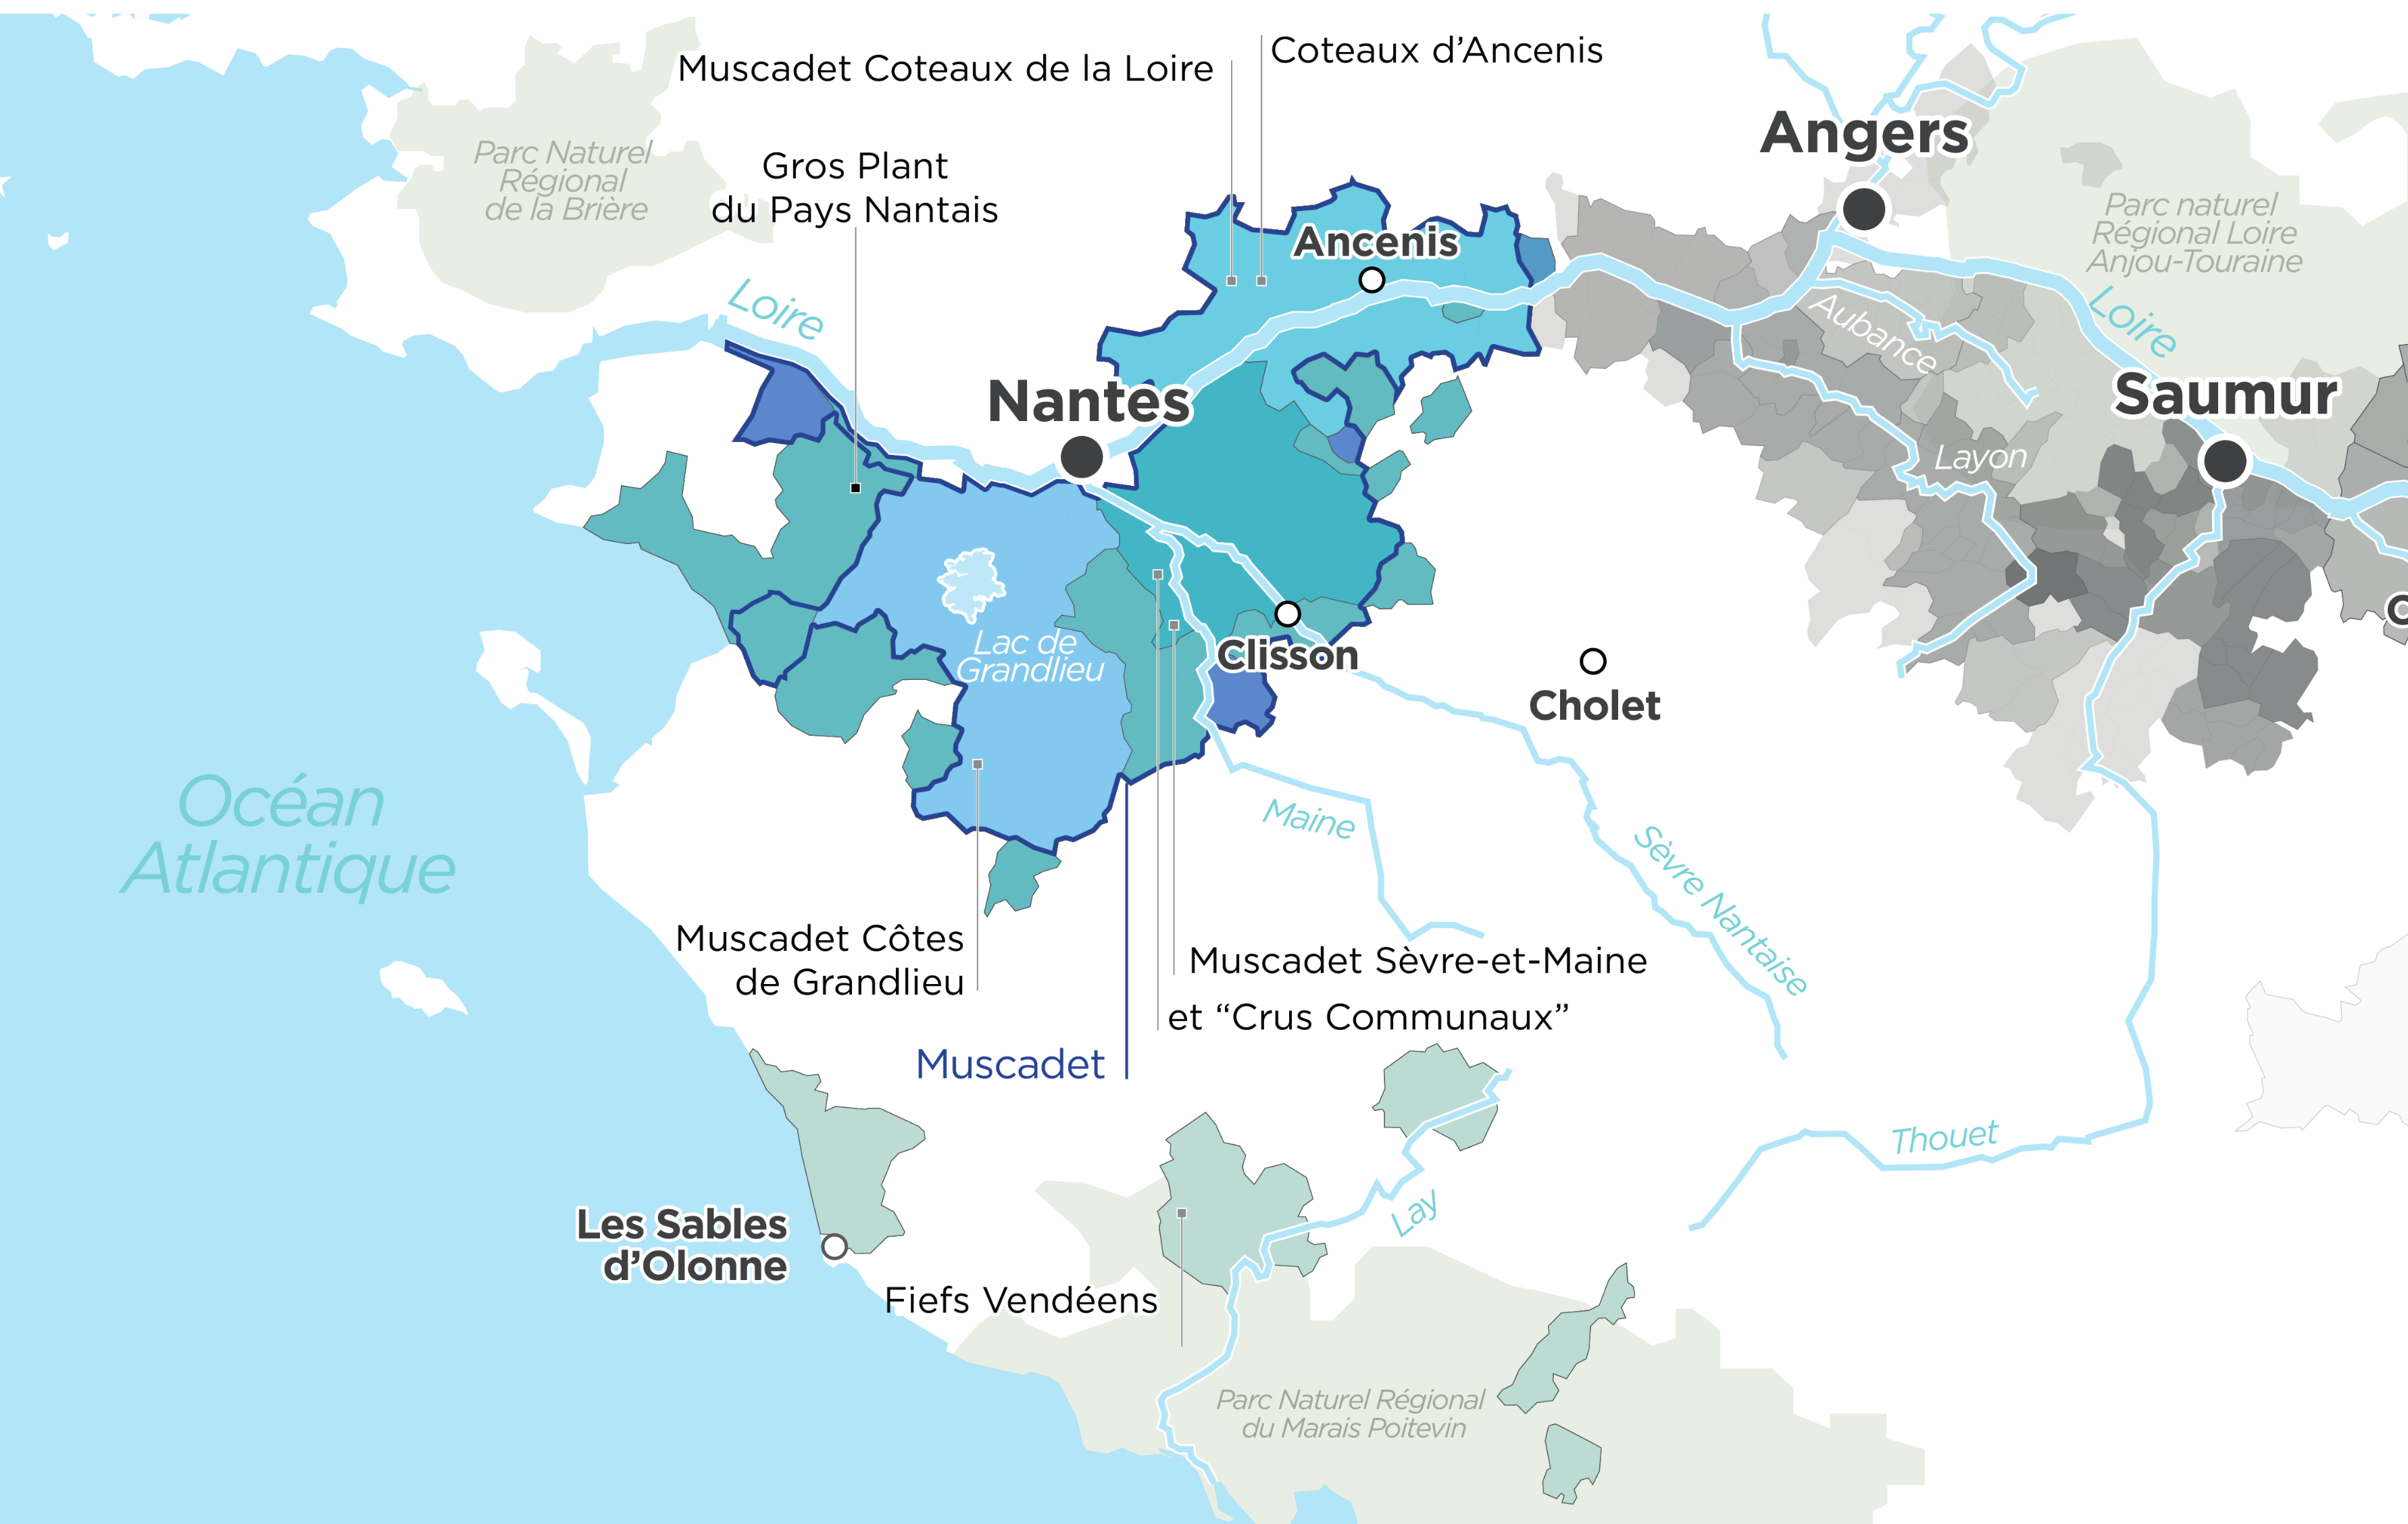 Map of Muscadet Wine's Region